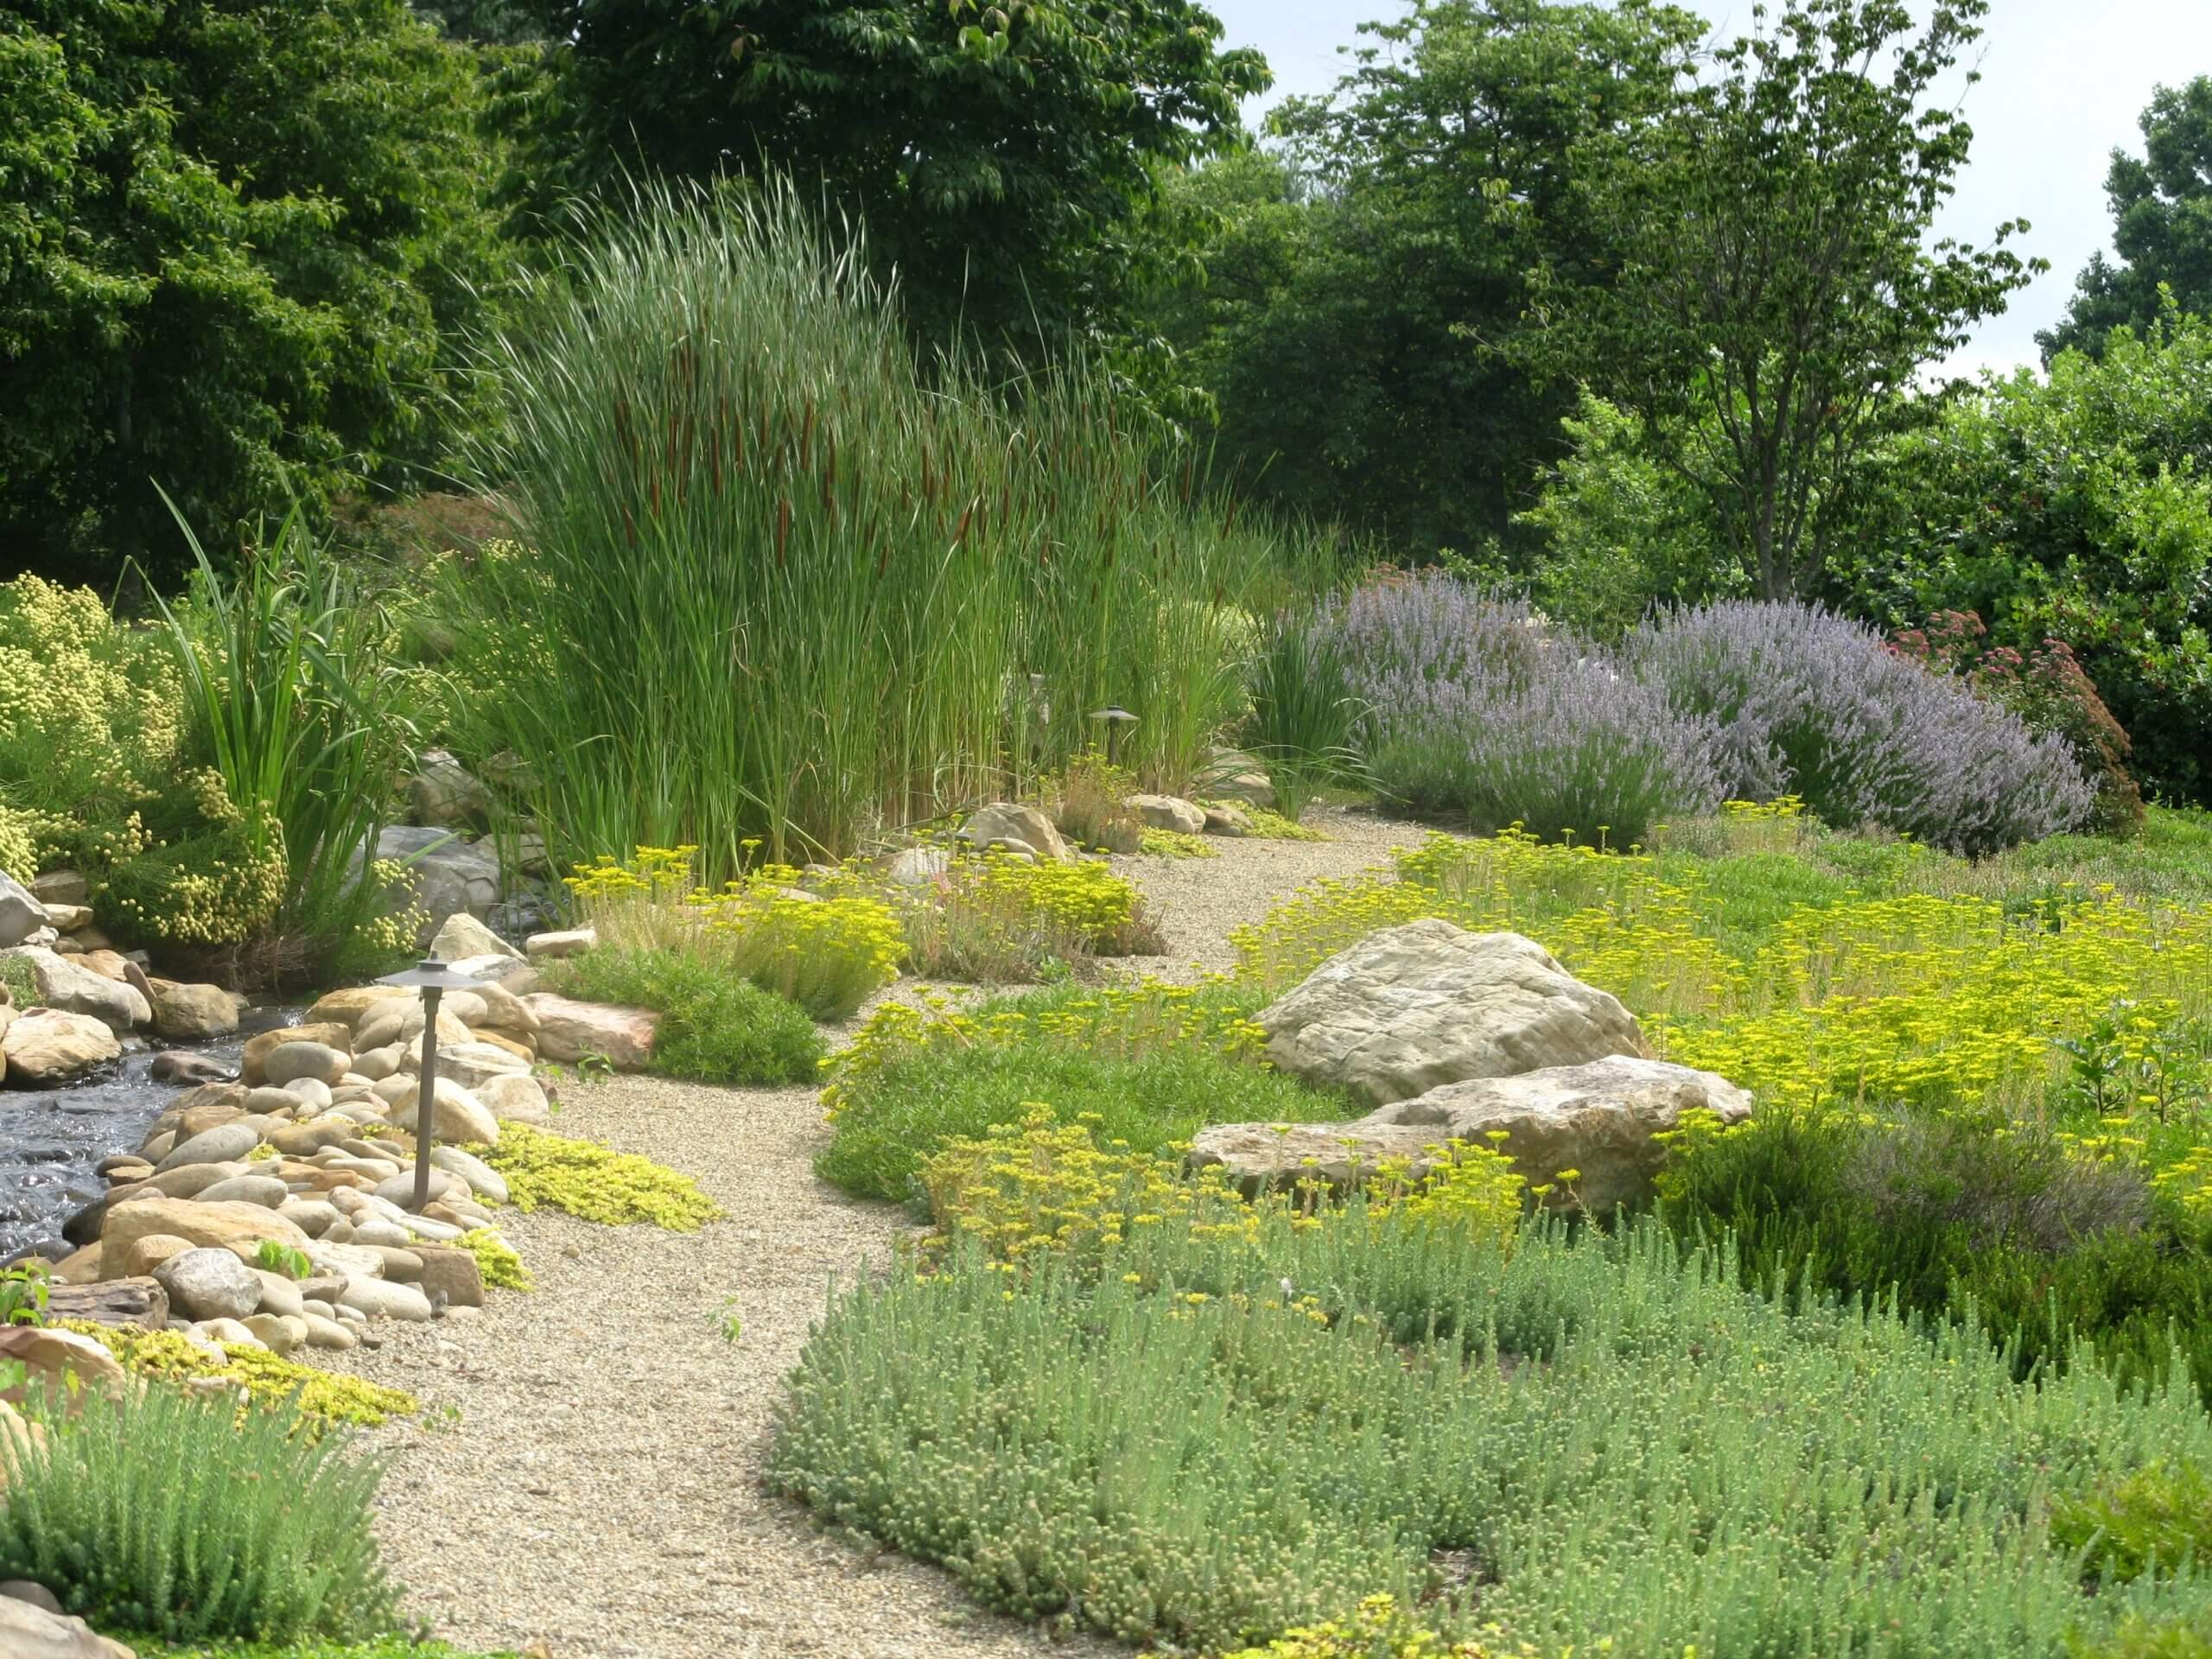 Country Garden Landscape & Pathway in Knoxville